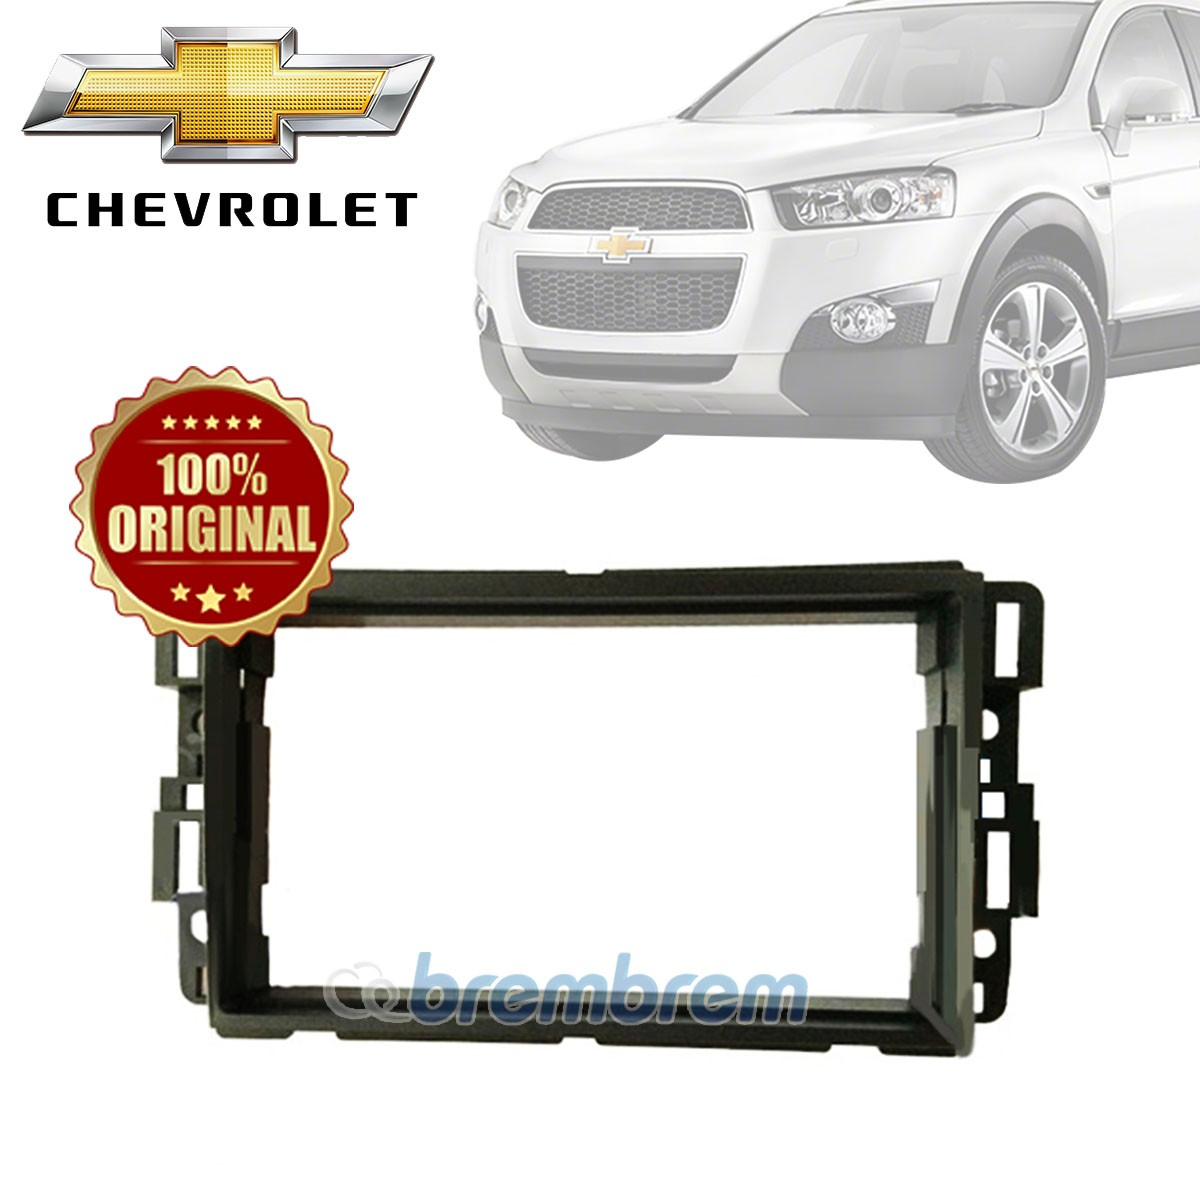 FRAME HEAD UNIT CHEVROLET CAPTIVA 2012-2014